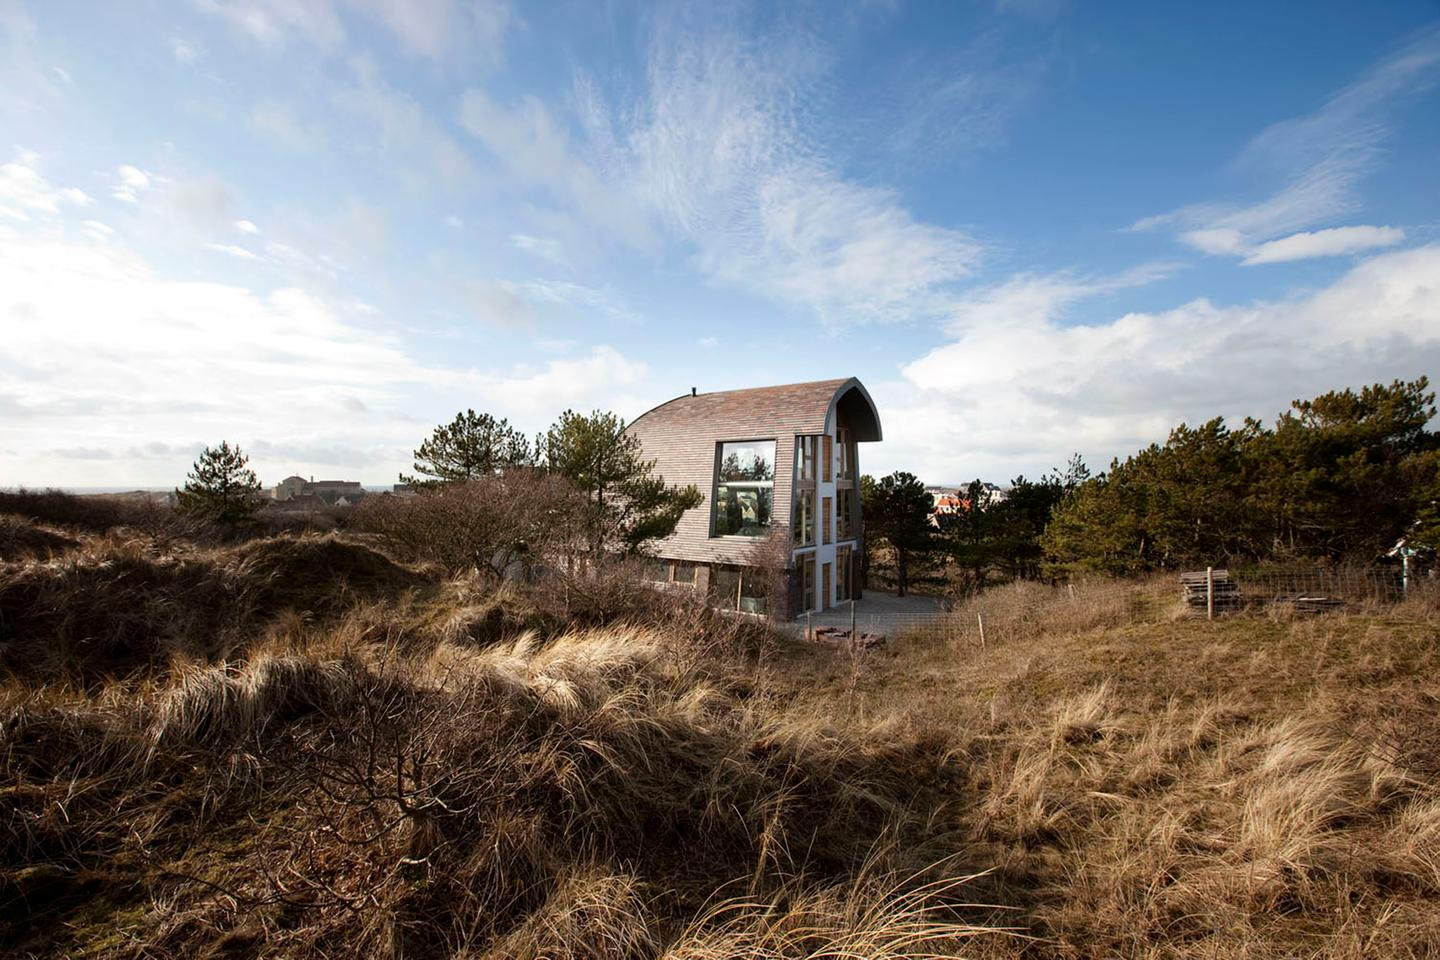 Dune House is located on the crest of a sand dune in North Holland (Photo: Erik Boschman)